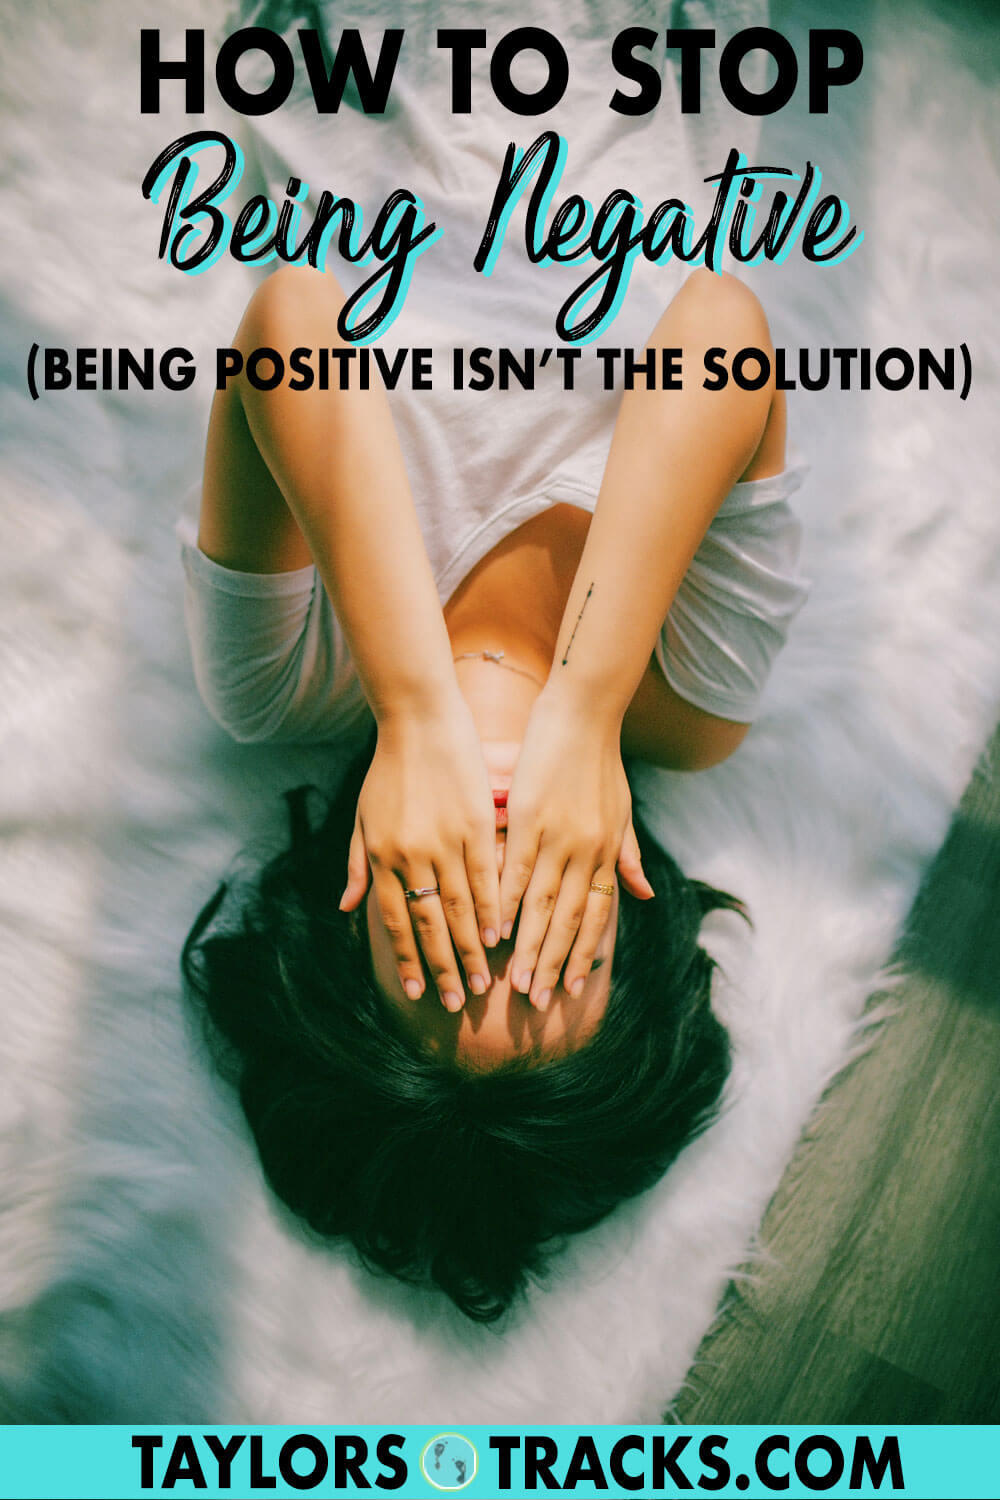 Learn how to get over negative thoughts in a healthy way and become a happier person with these mindset tips that will help you develop some self awareness. Click to learn how to stop being negative!